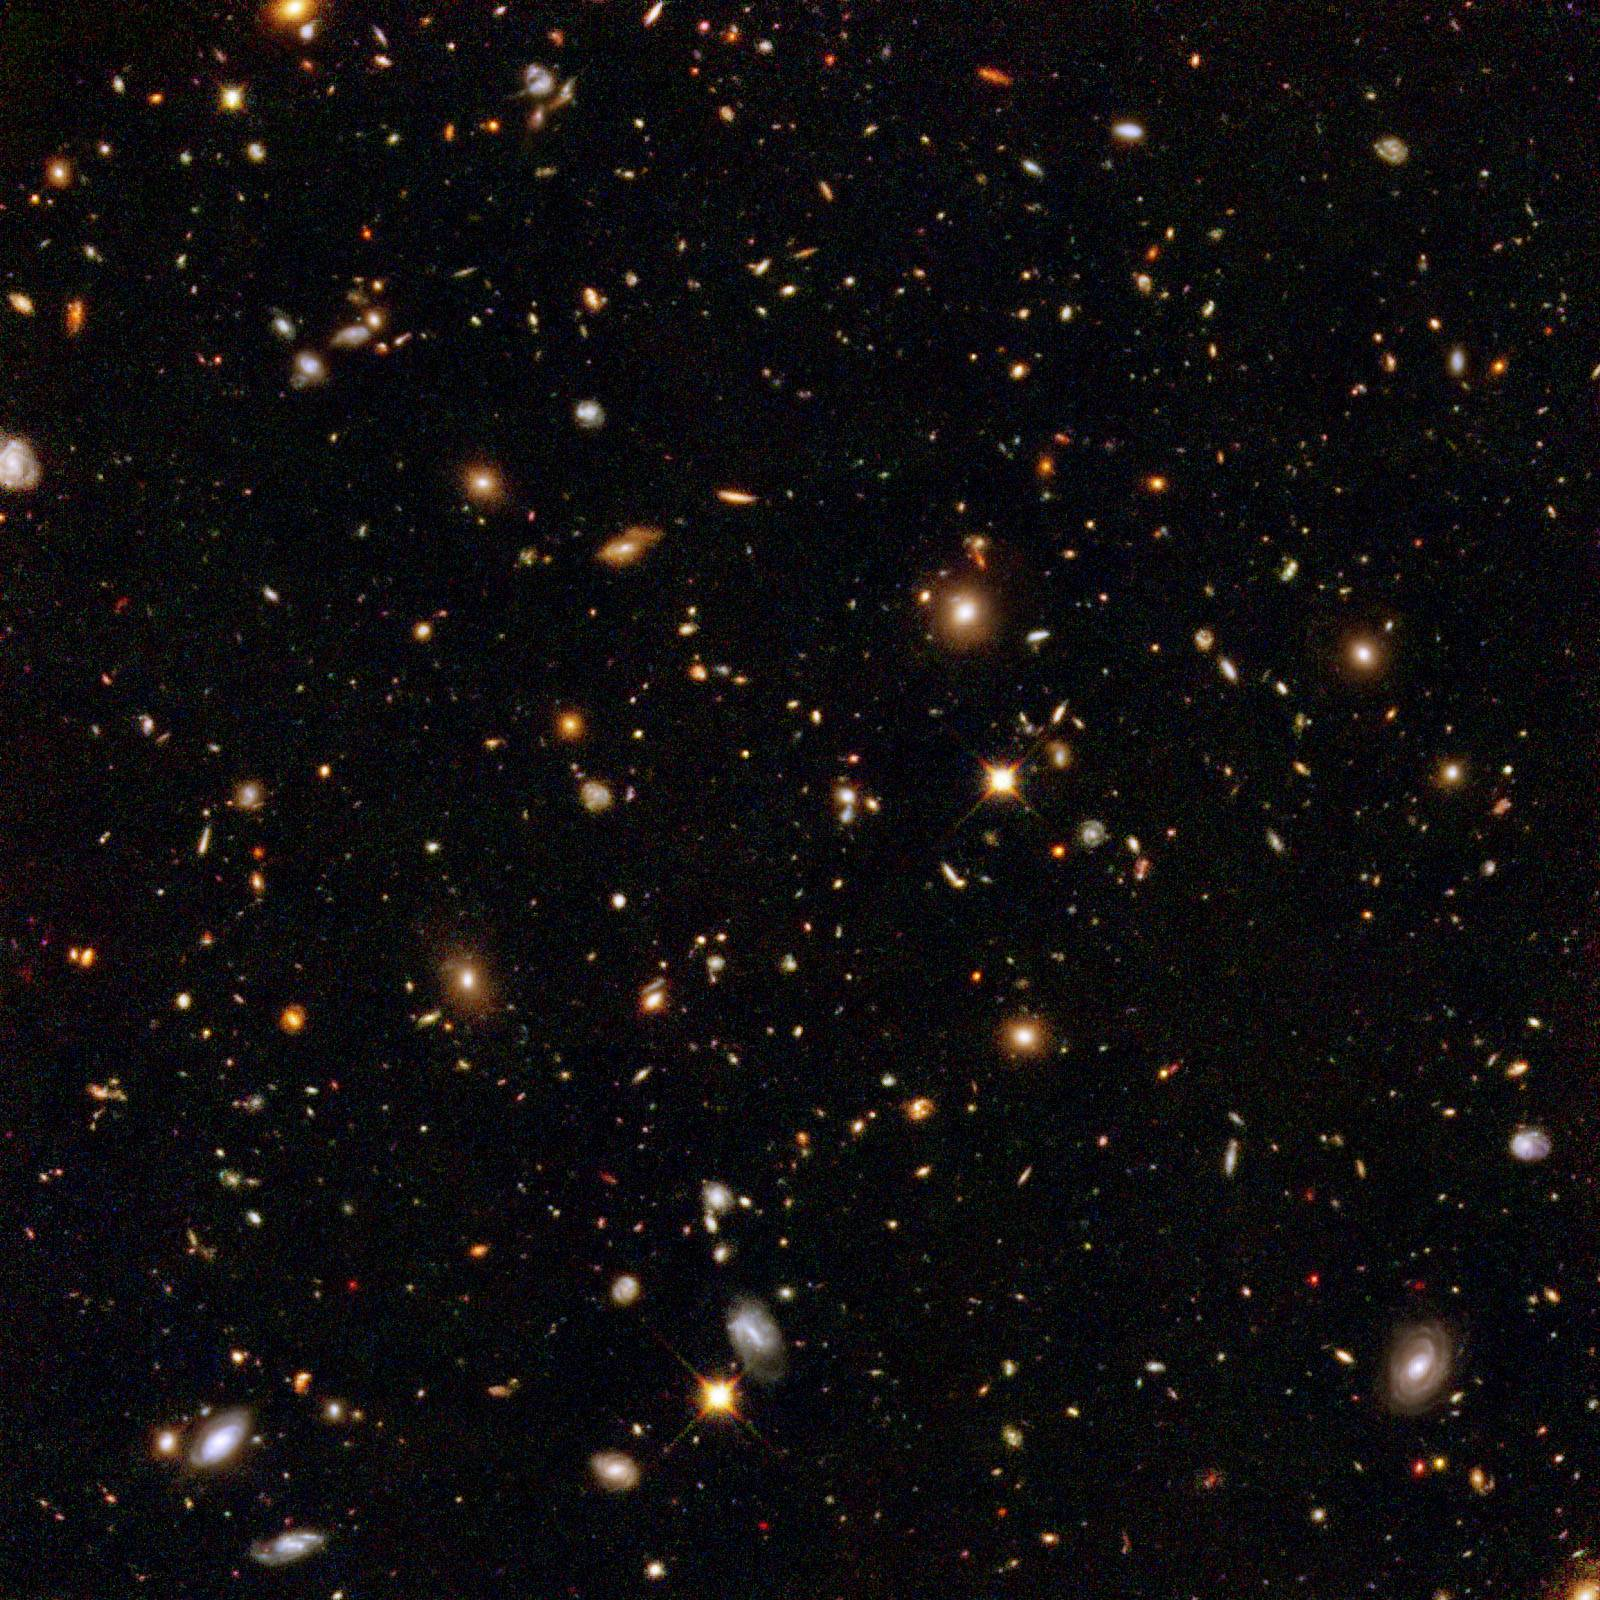 hubble deep field hd wallpaper - photo #12